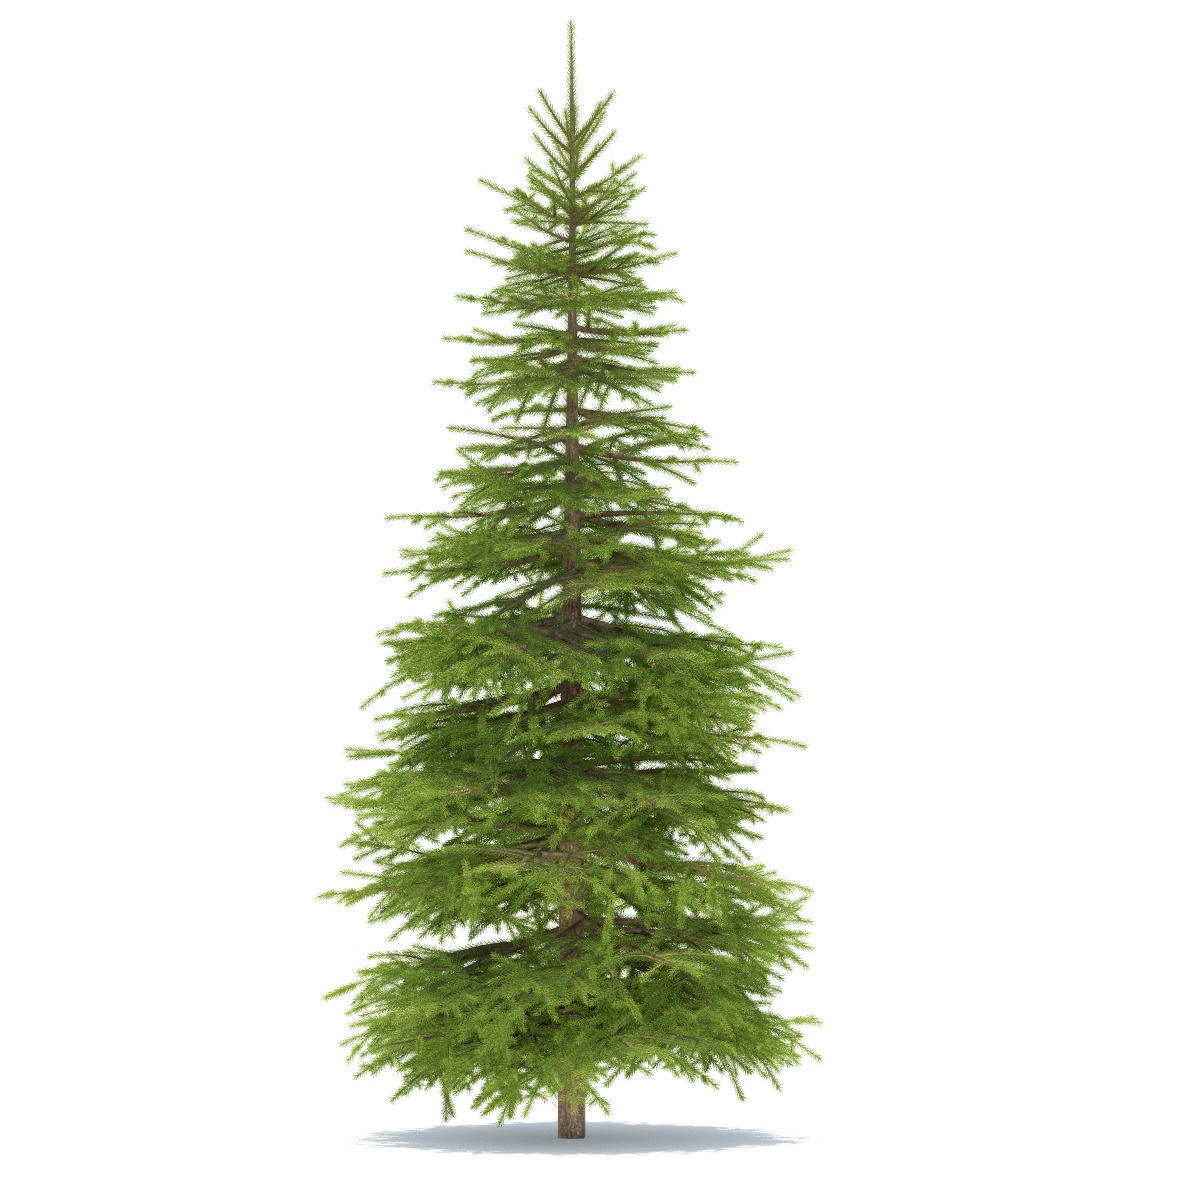 Spruce height 7 metre